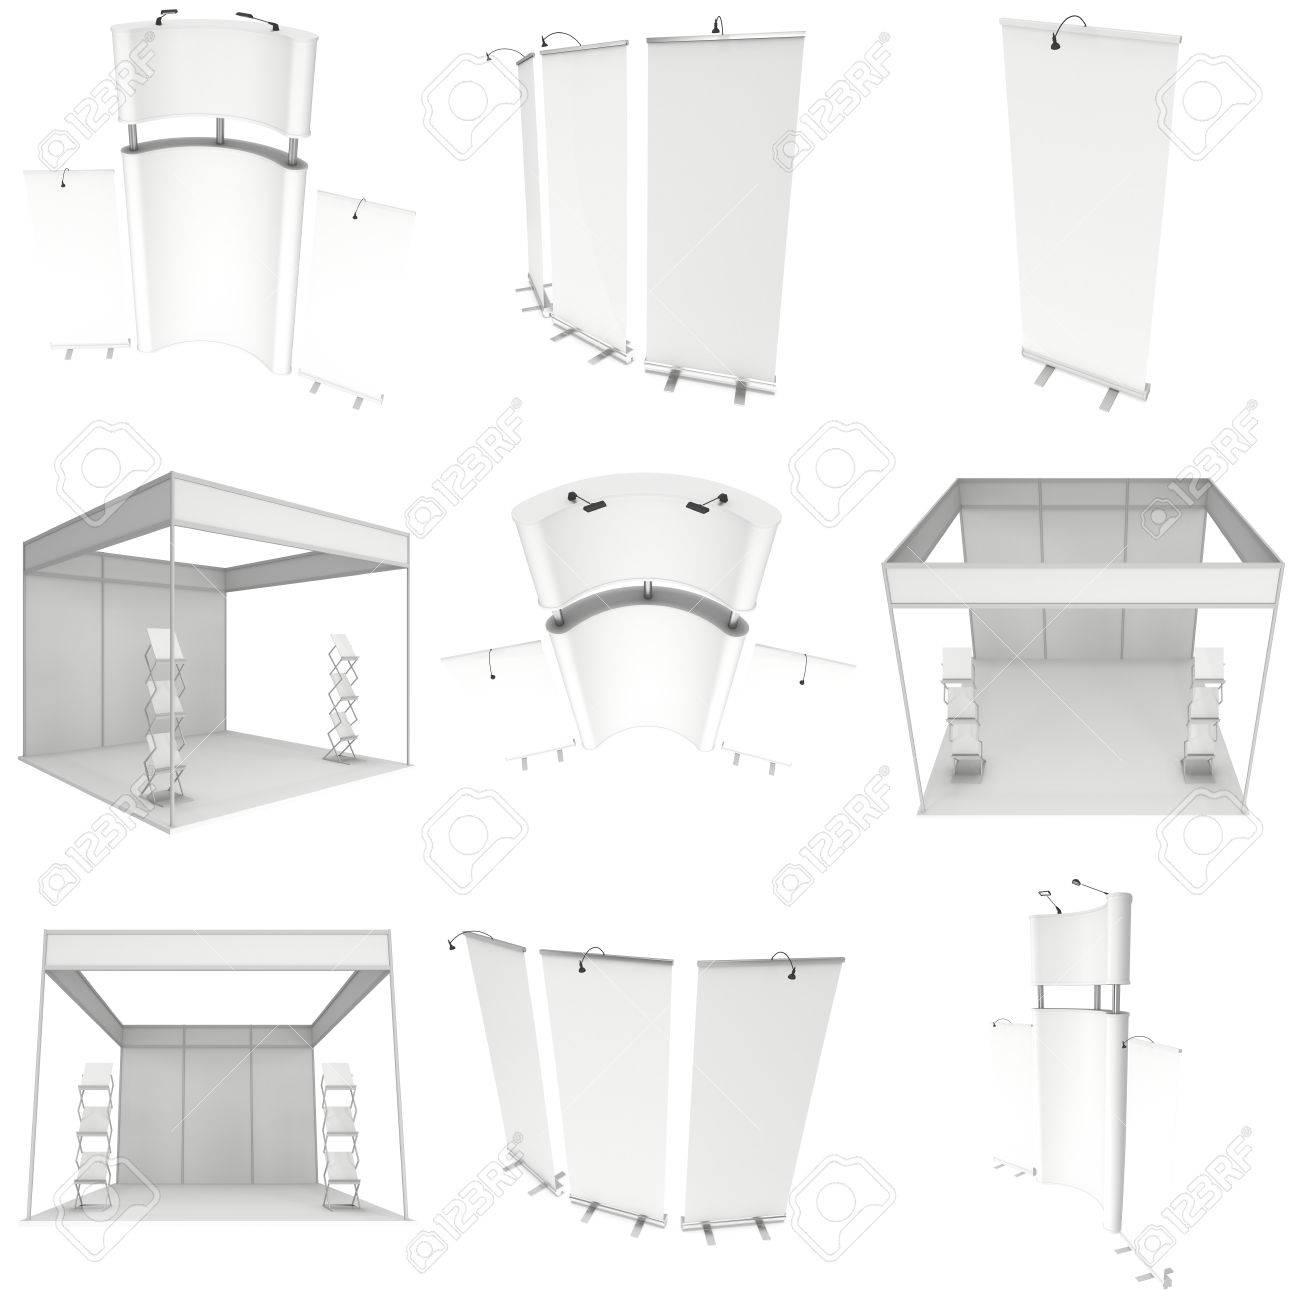 Trade Show Booth Set Roll Up Pop Up With Reception Desk 3d